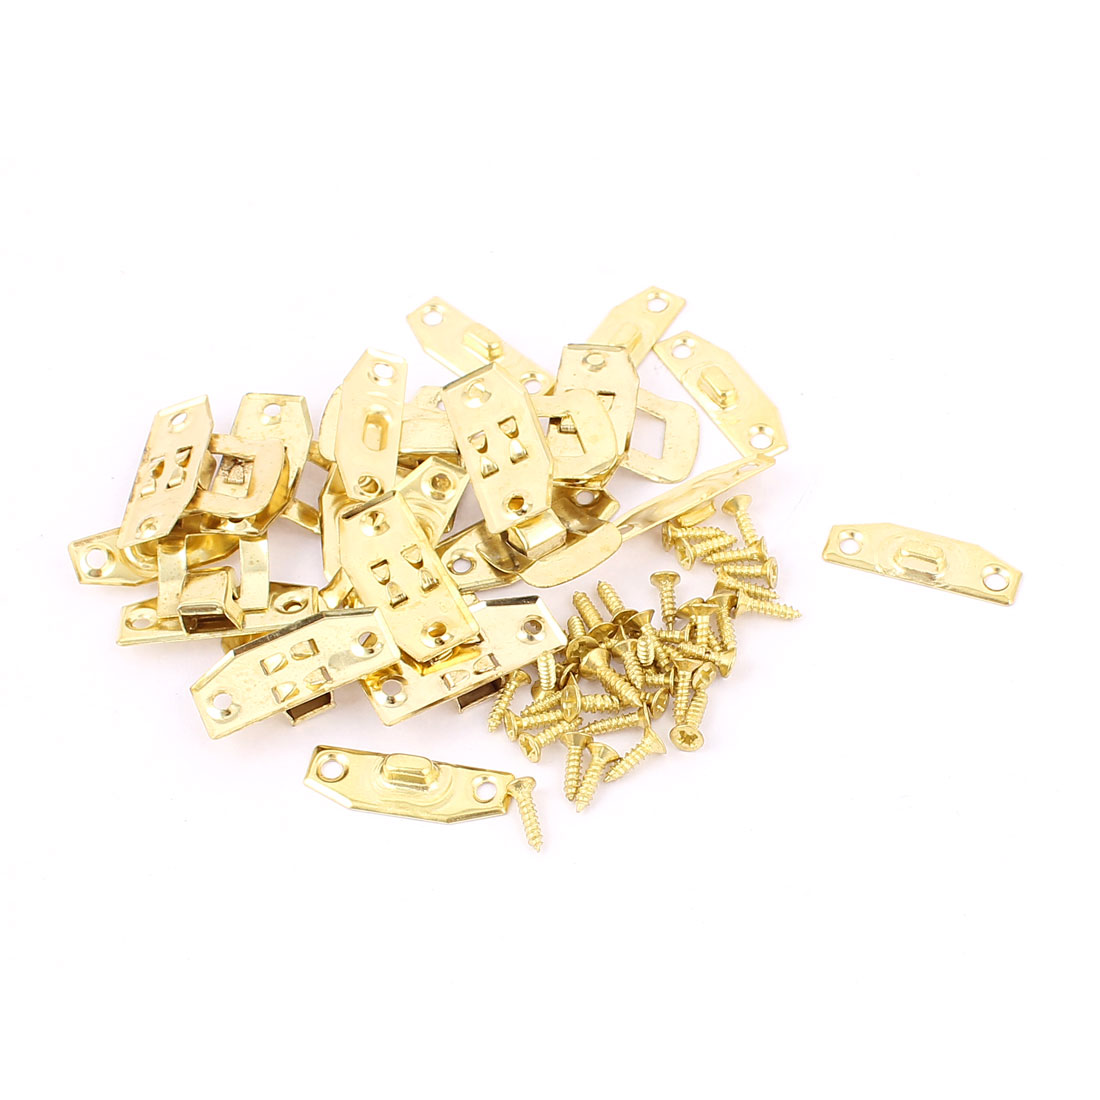 10 Pcs Antique Wood Jewelry Box Latch Sets Case Hasp Pad Chest Lock Hook Hinge Gold Tone w Screws